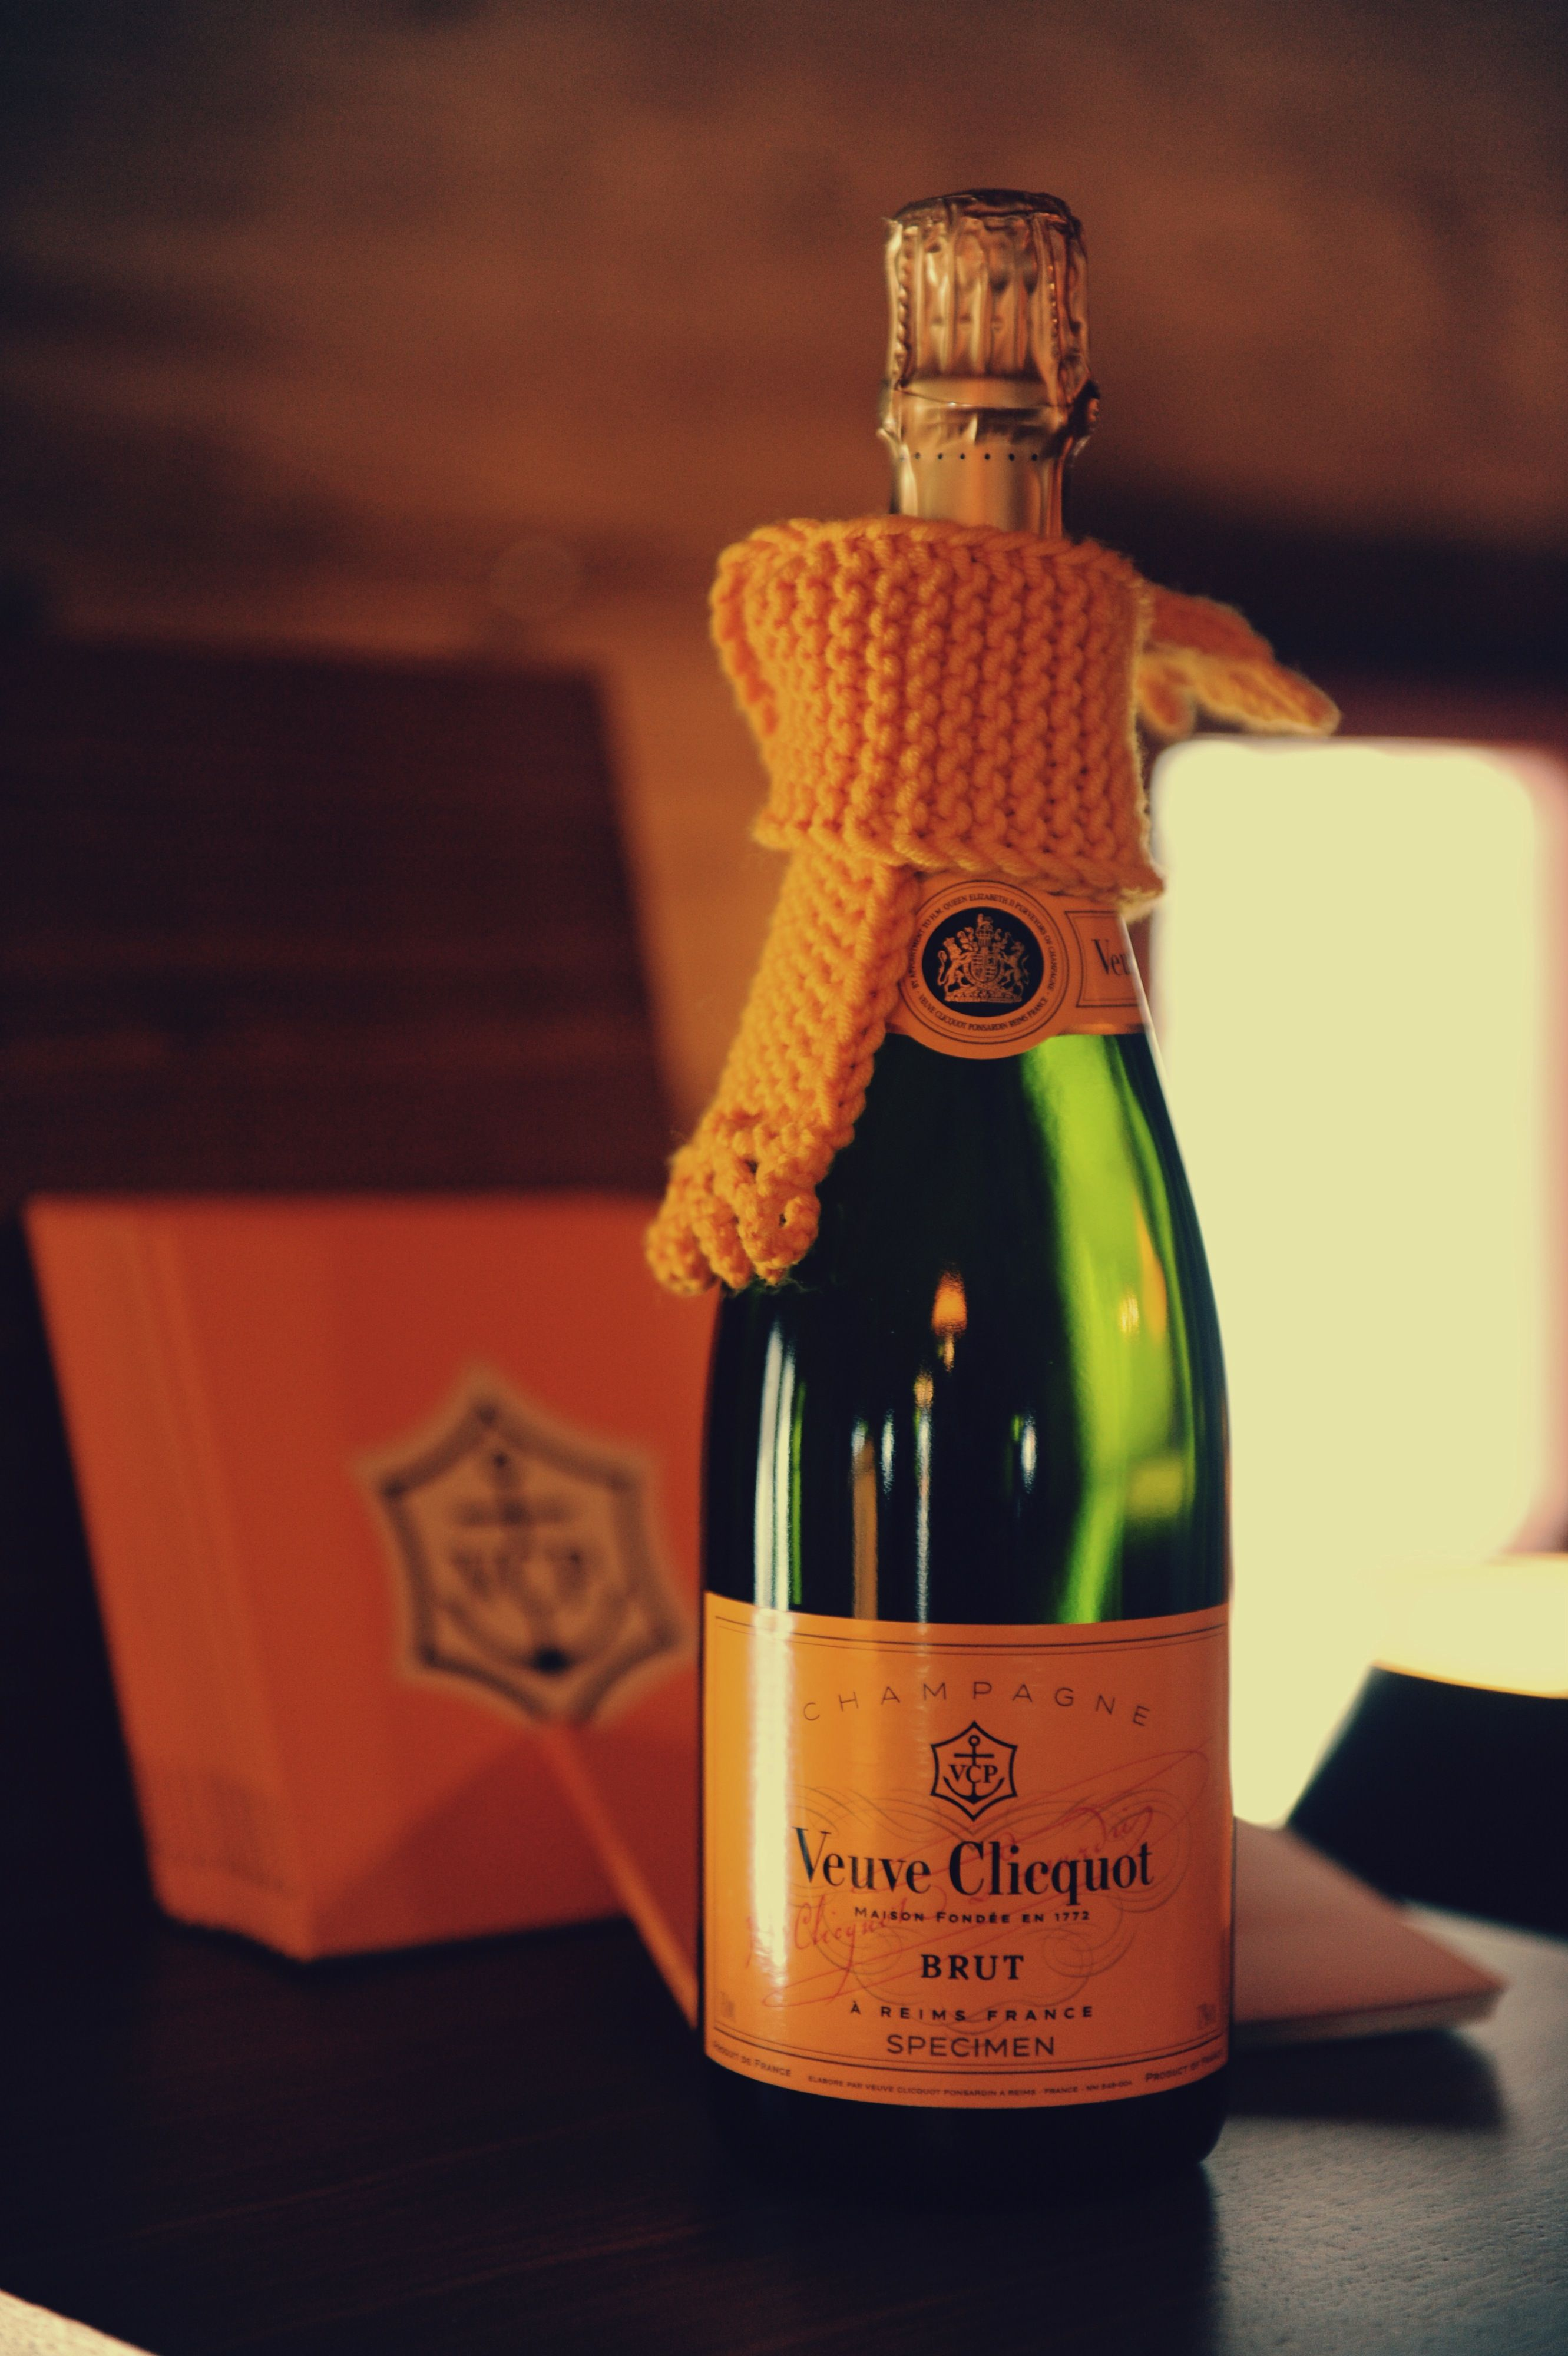 Bundled Up Champagne Veuve Clicquot French Wine